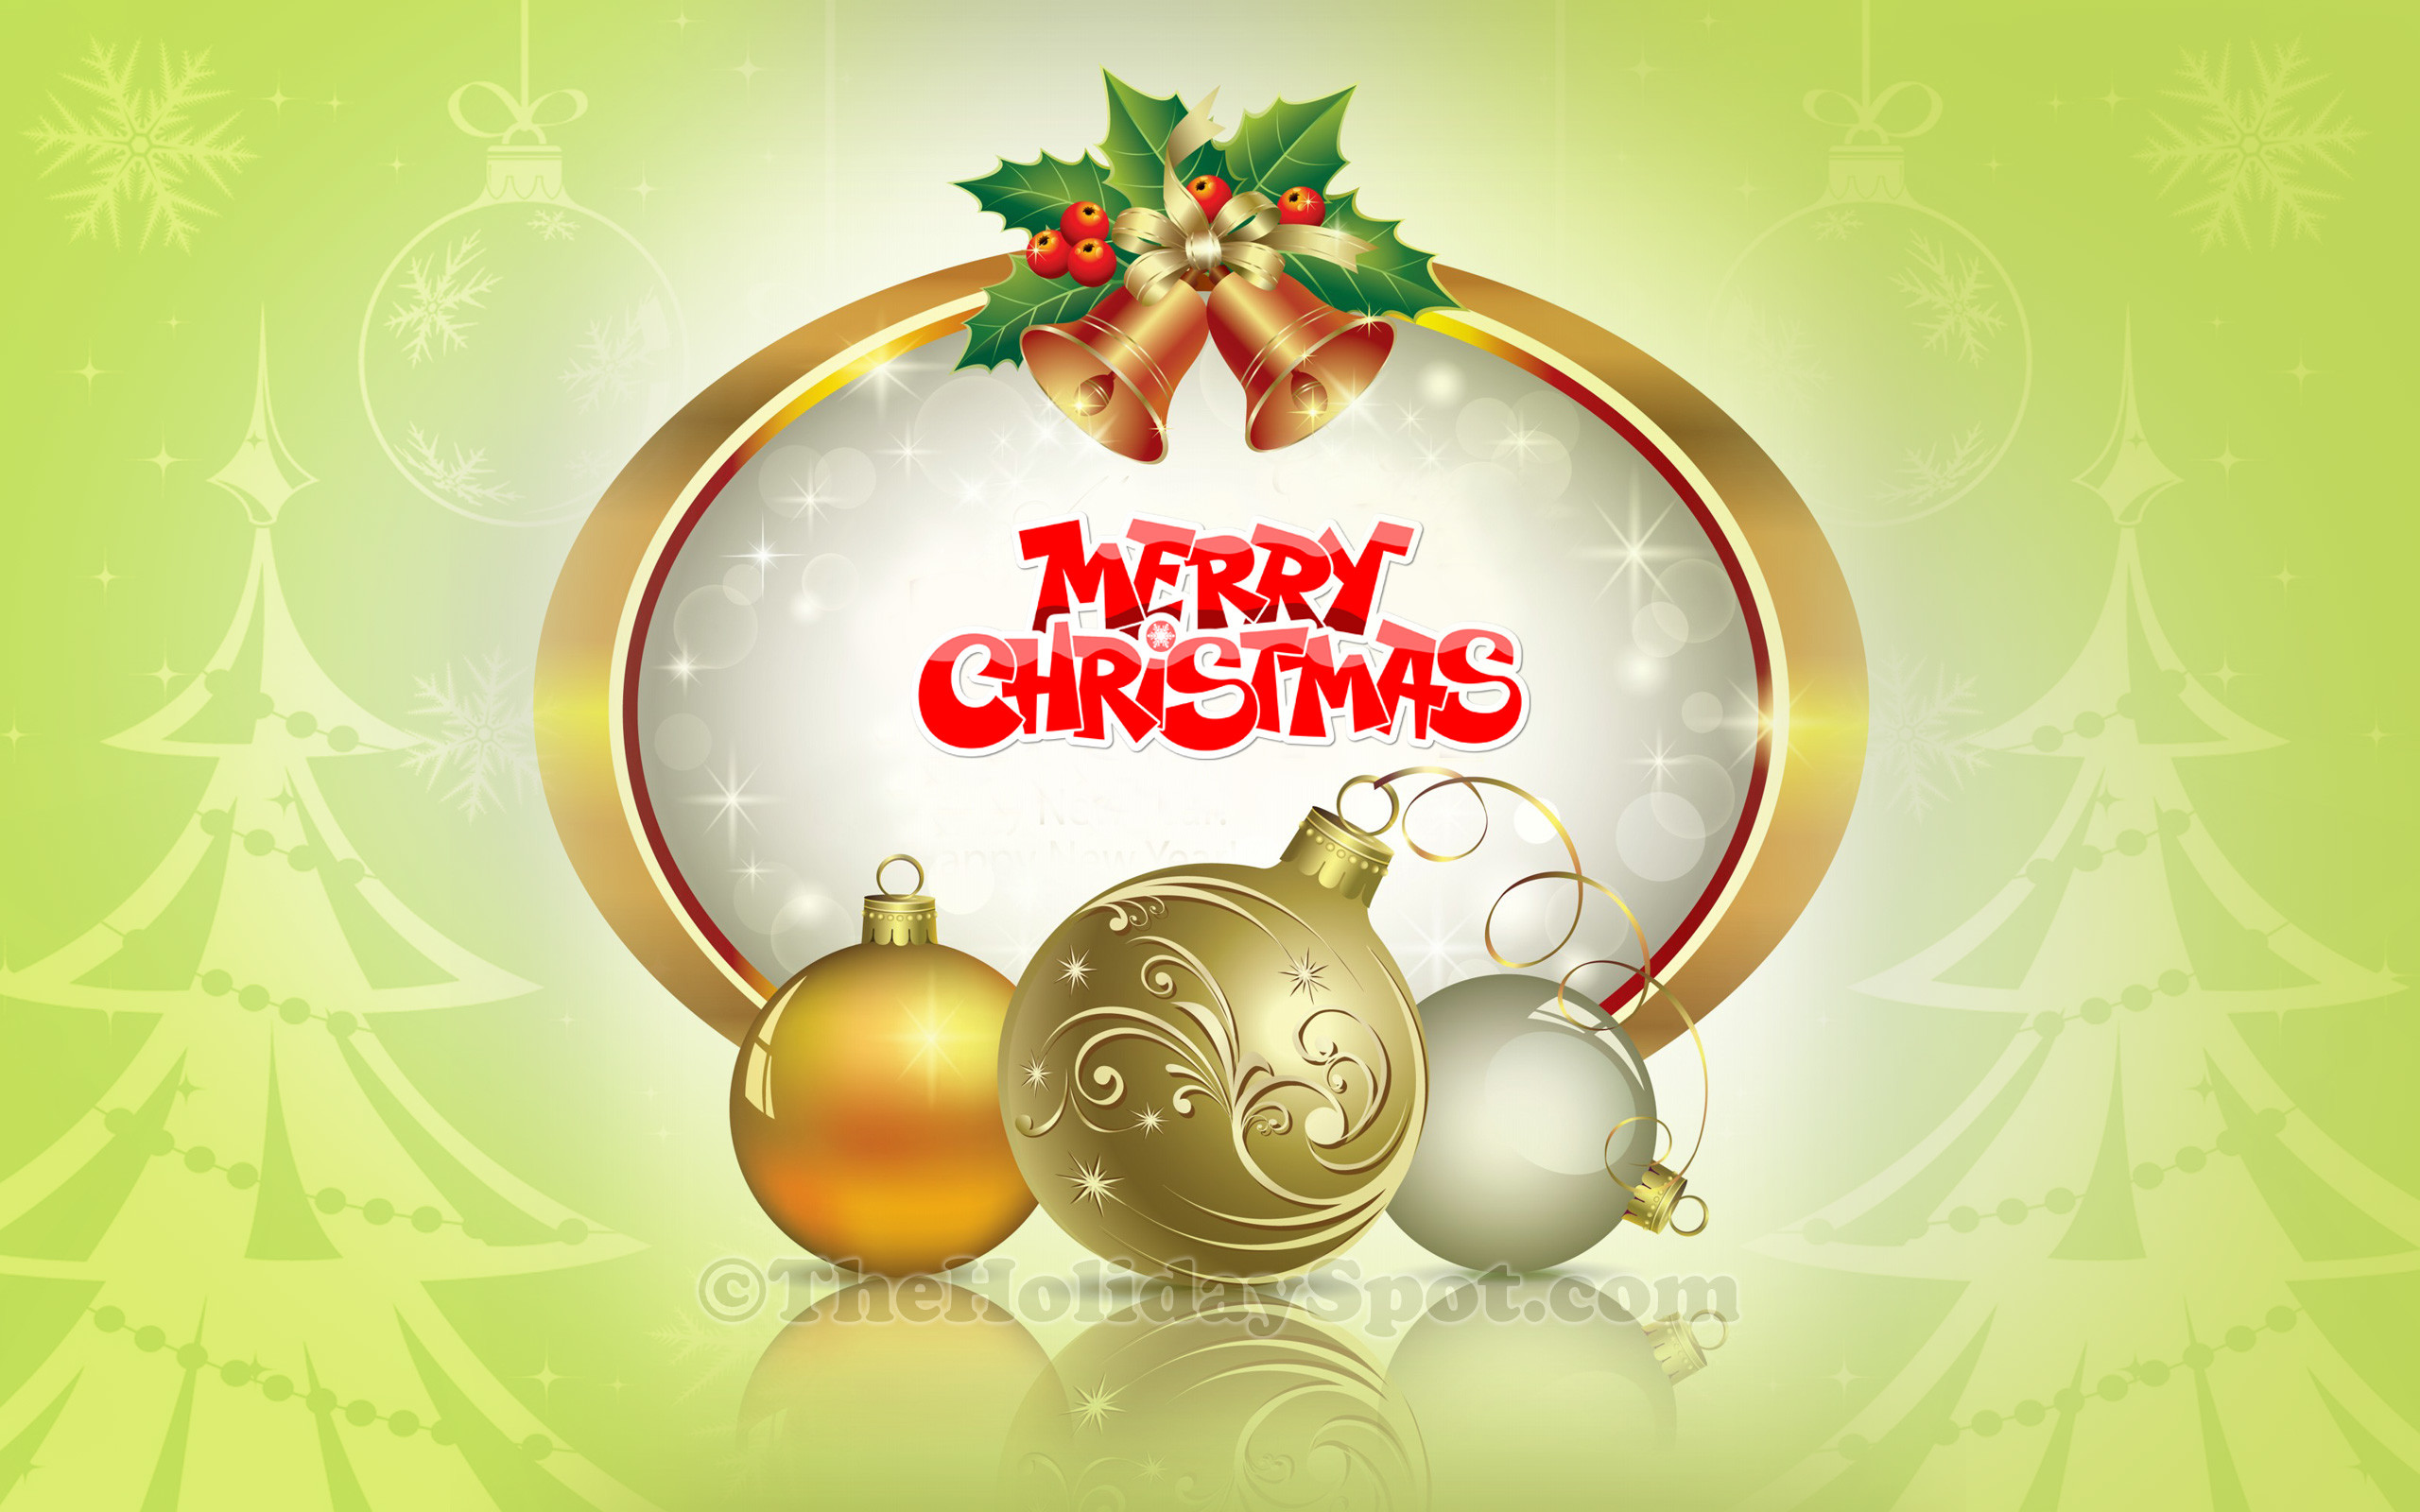 Res: 2560x1600, Merry Christmas Decoration Wallpaper